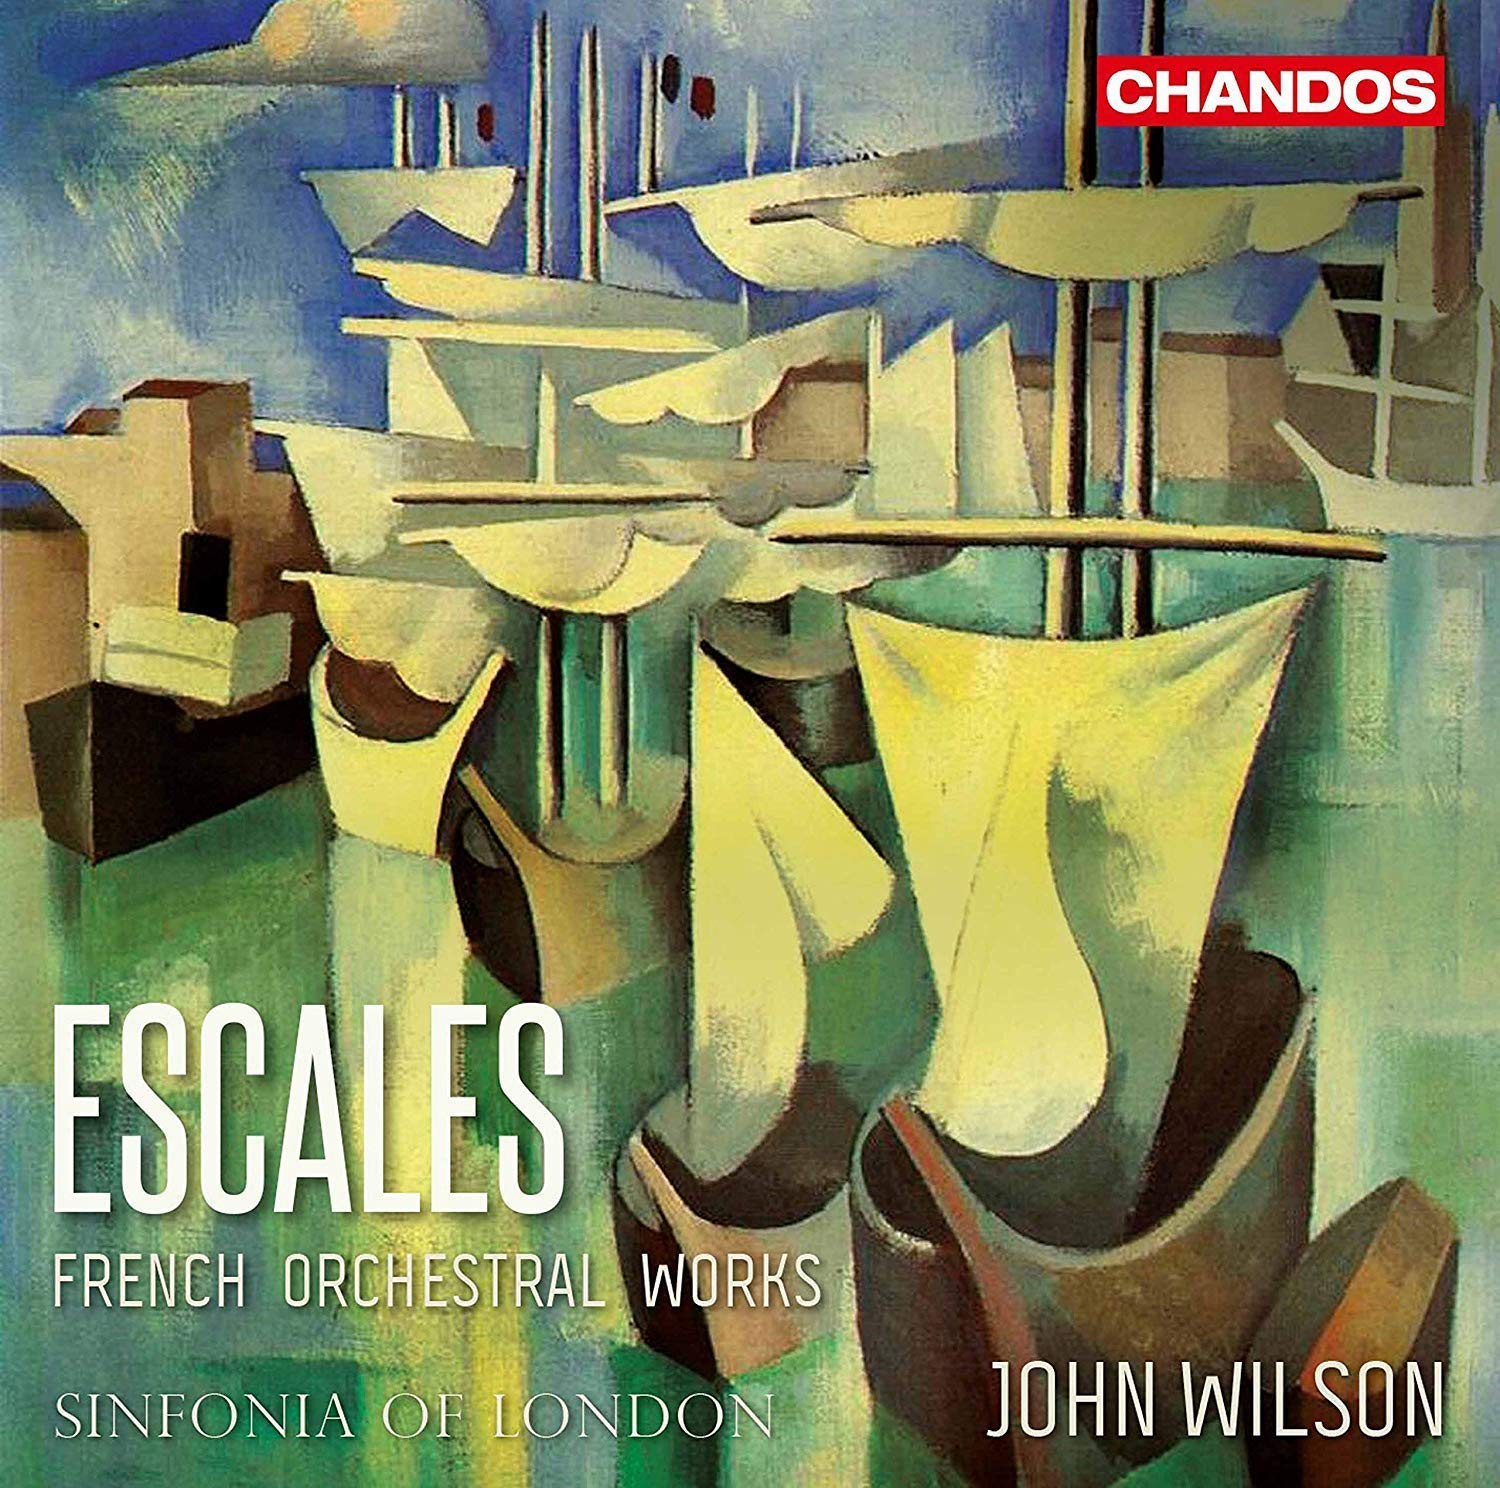 Review of Escales: French Orchestral Works